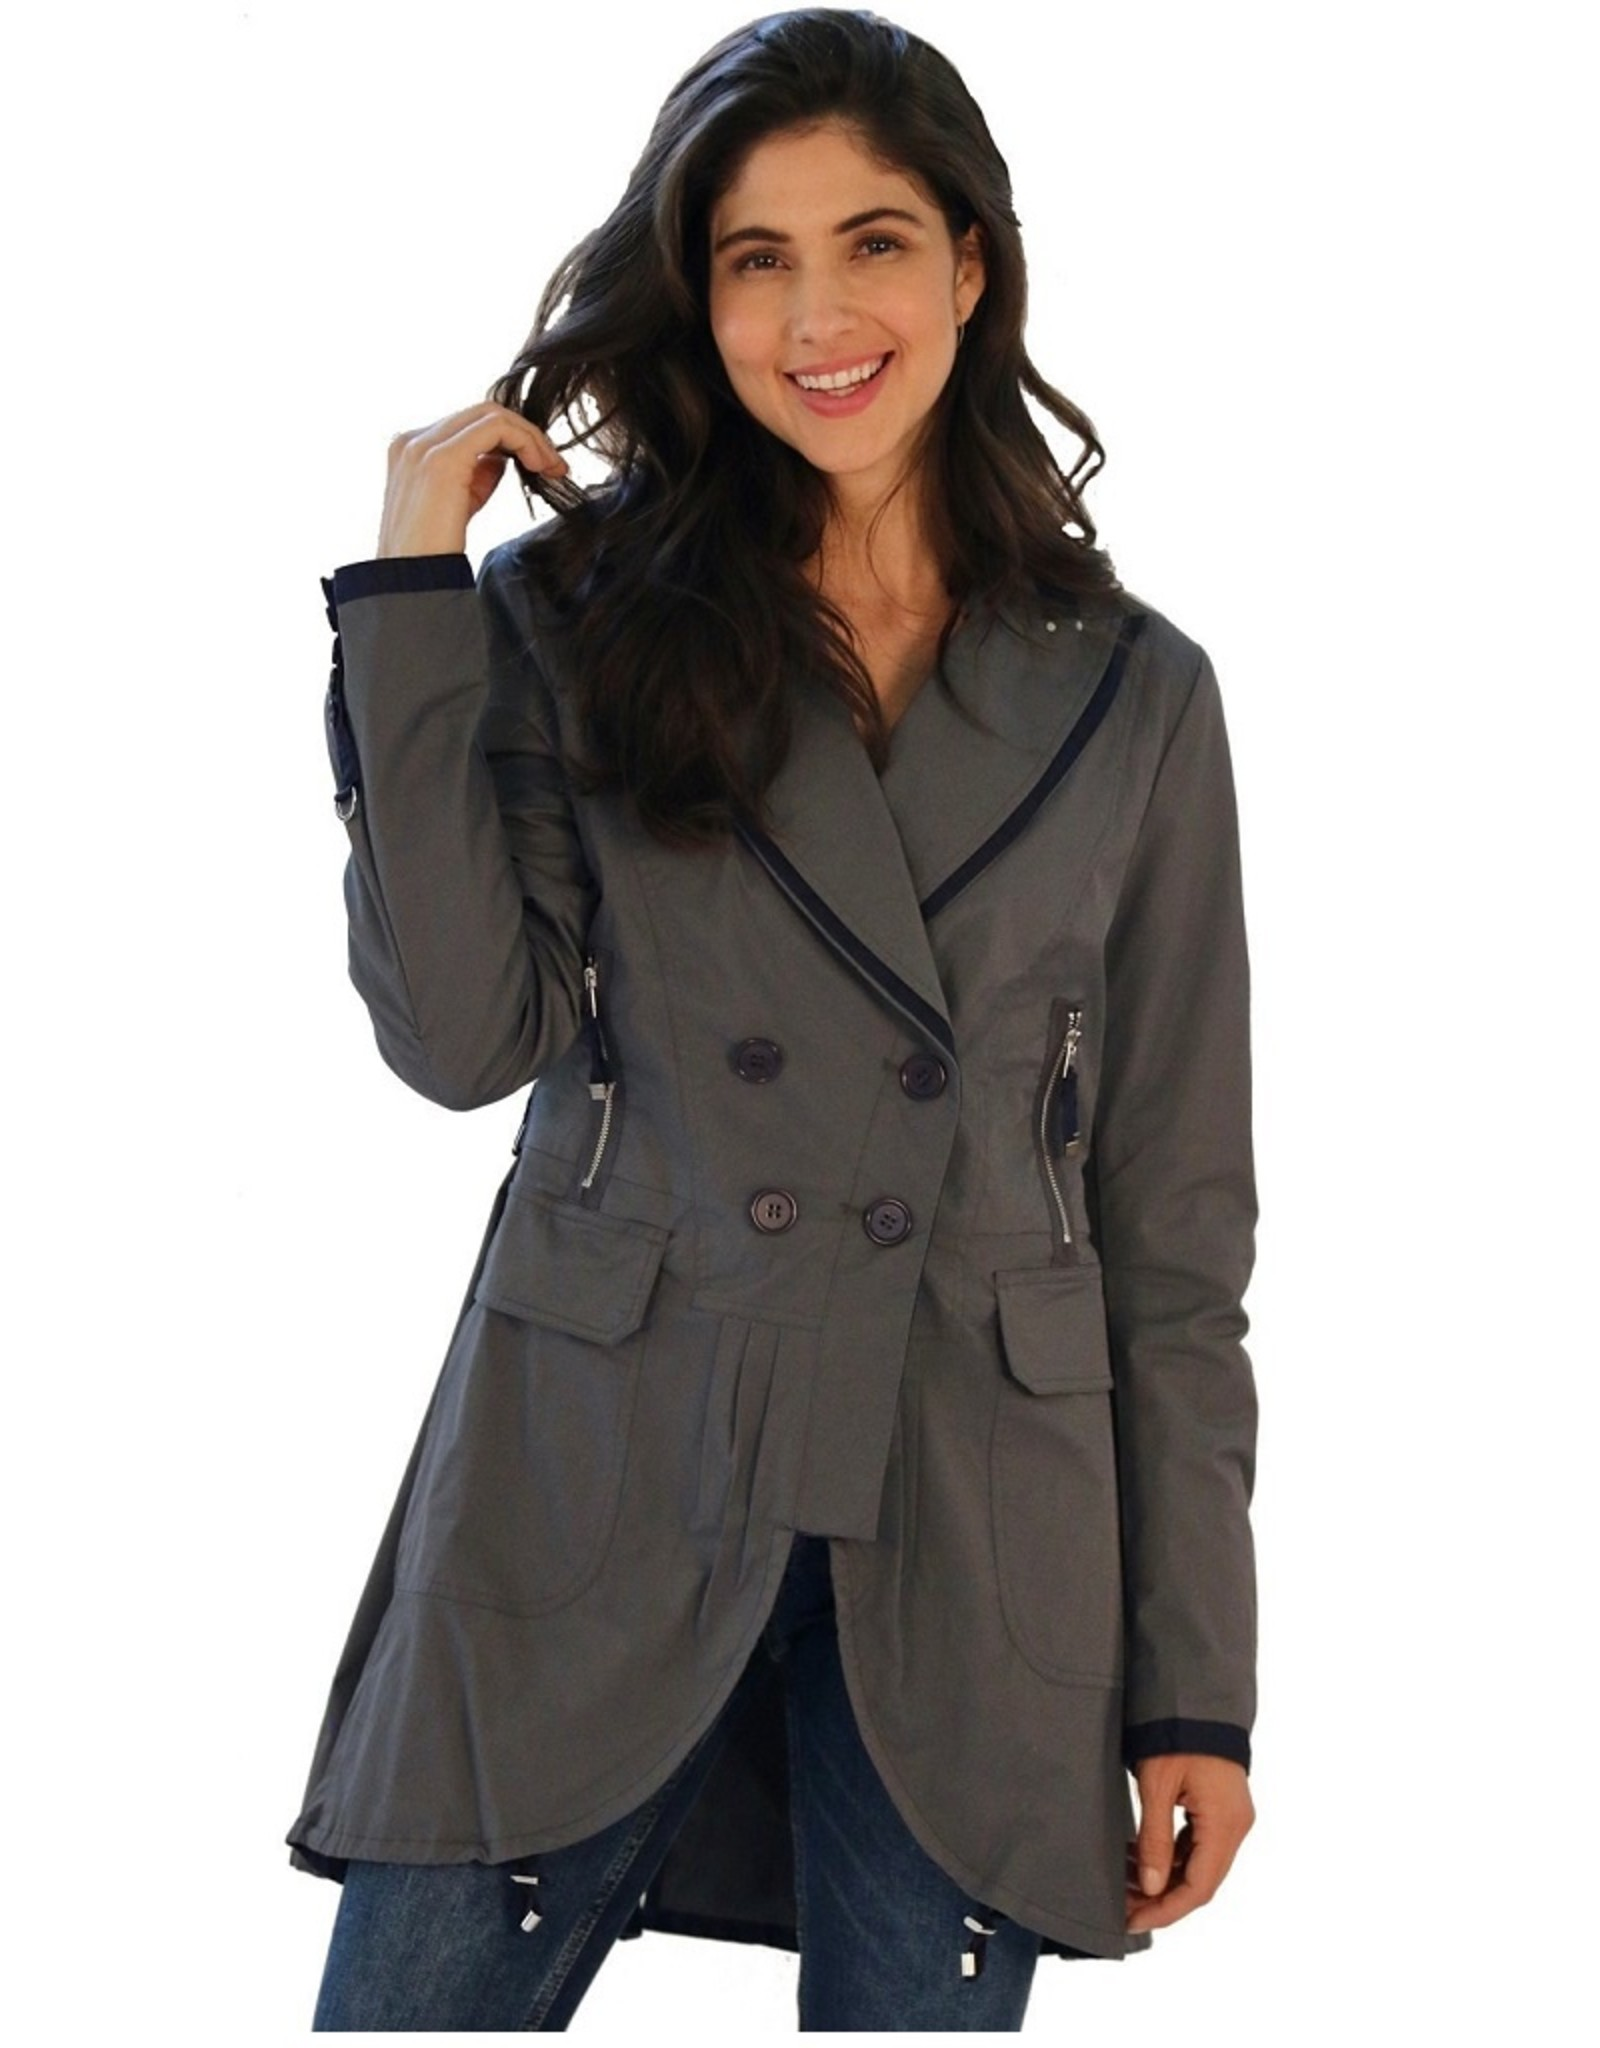 Ciao Milano Ciao Milano Amber Military Style Rain Jacket in Grey with Navy Grosgrain Trim